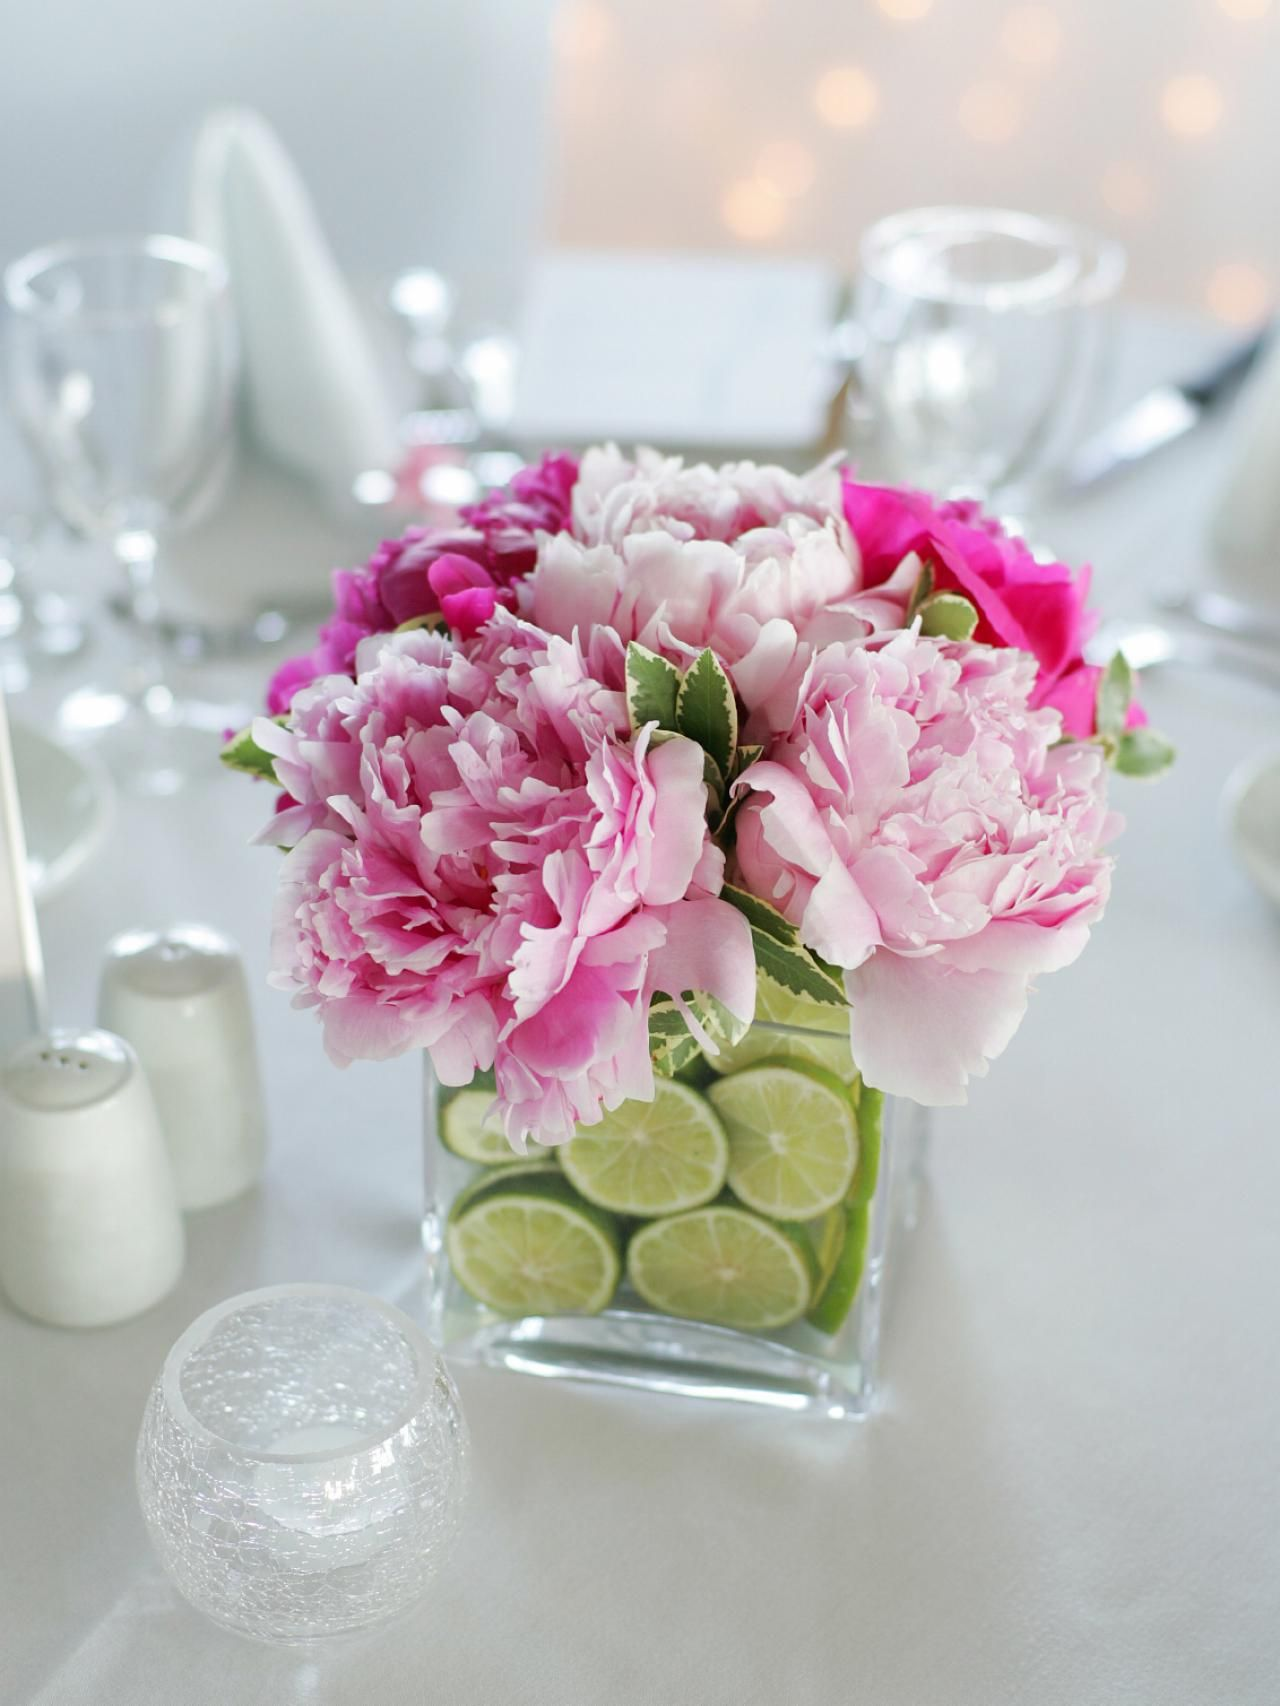 Simple Centerpieces For Party : Party centerpieces perennials limes and spring